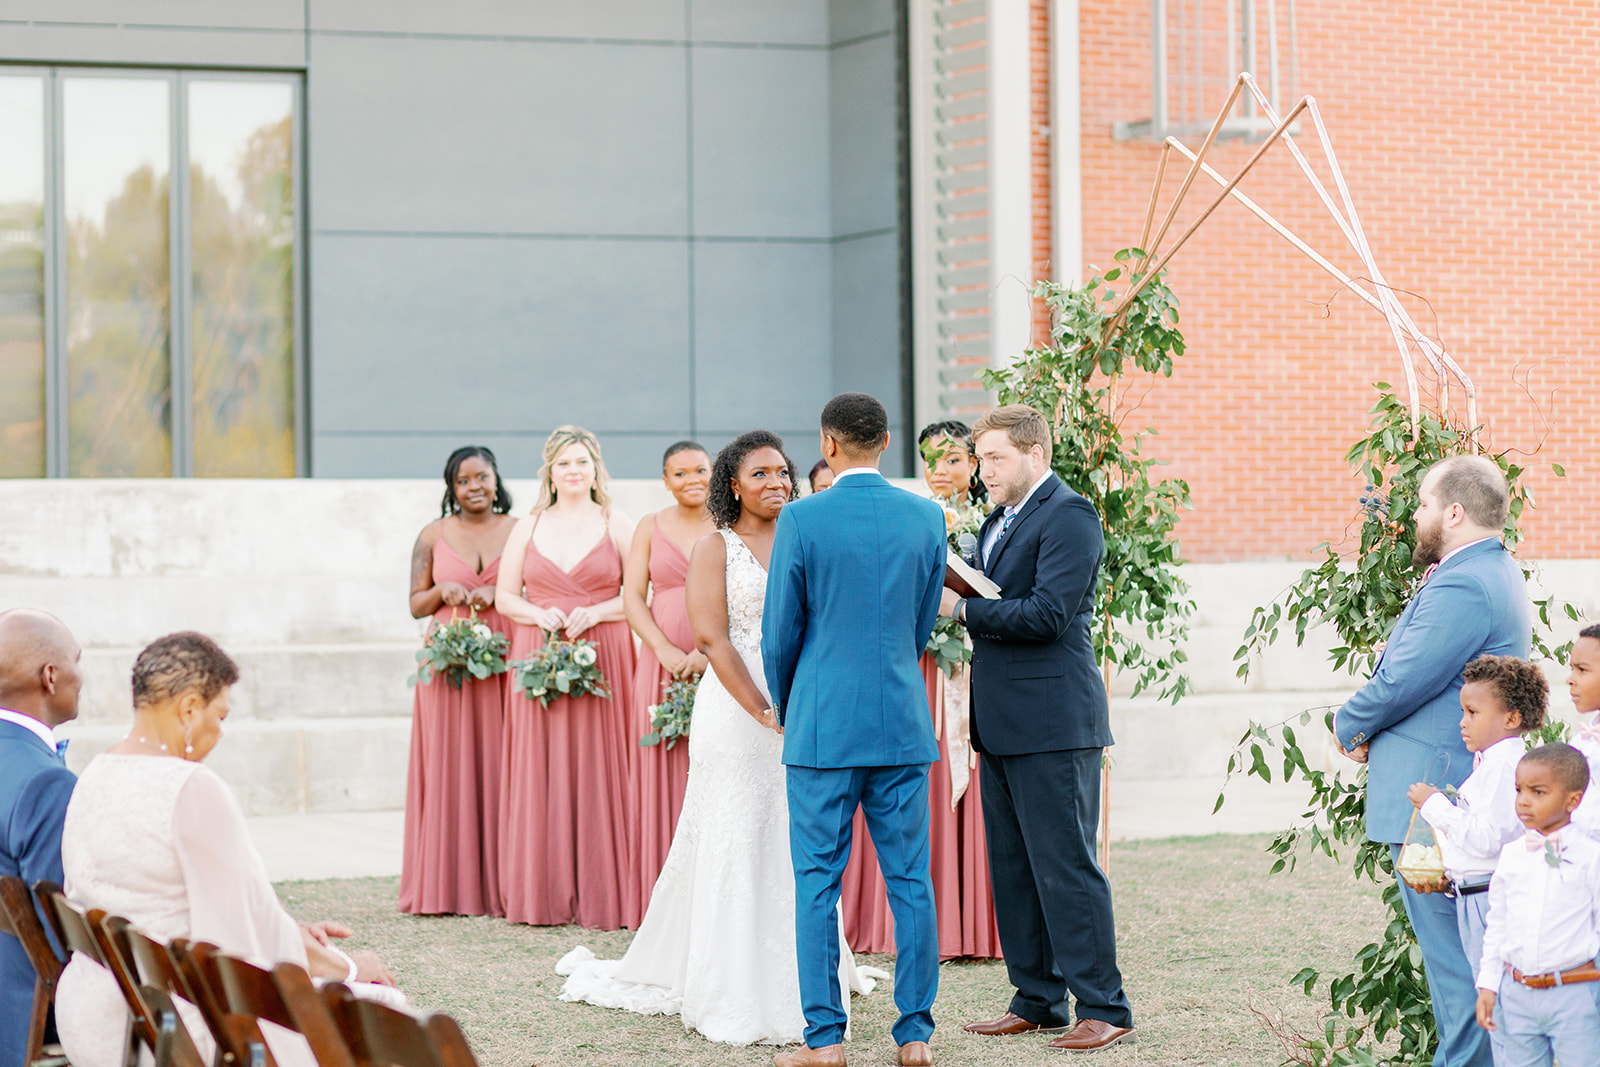 bride and groom holding hands during ceremony while wedding party looks on